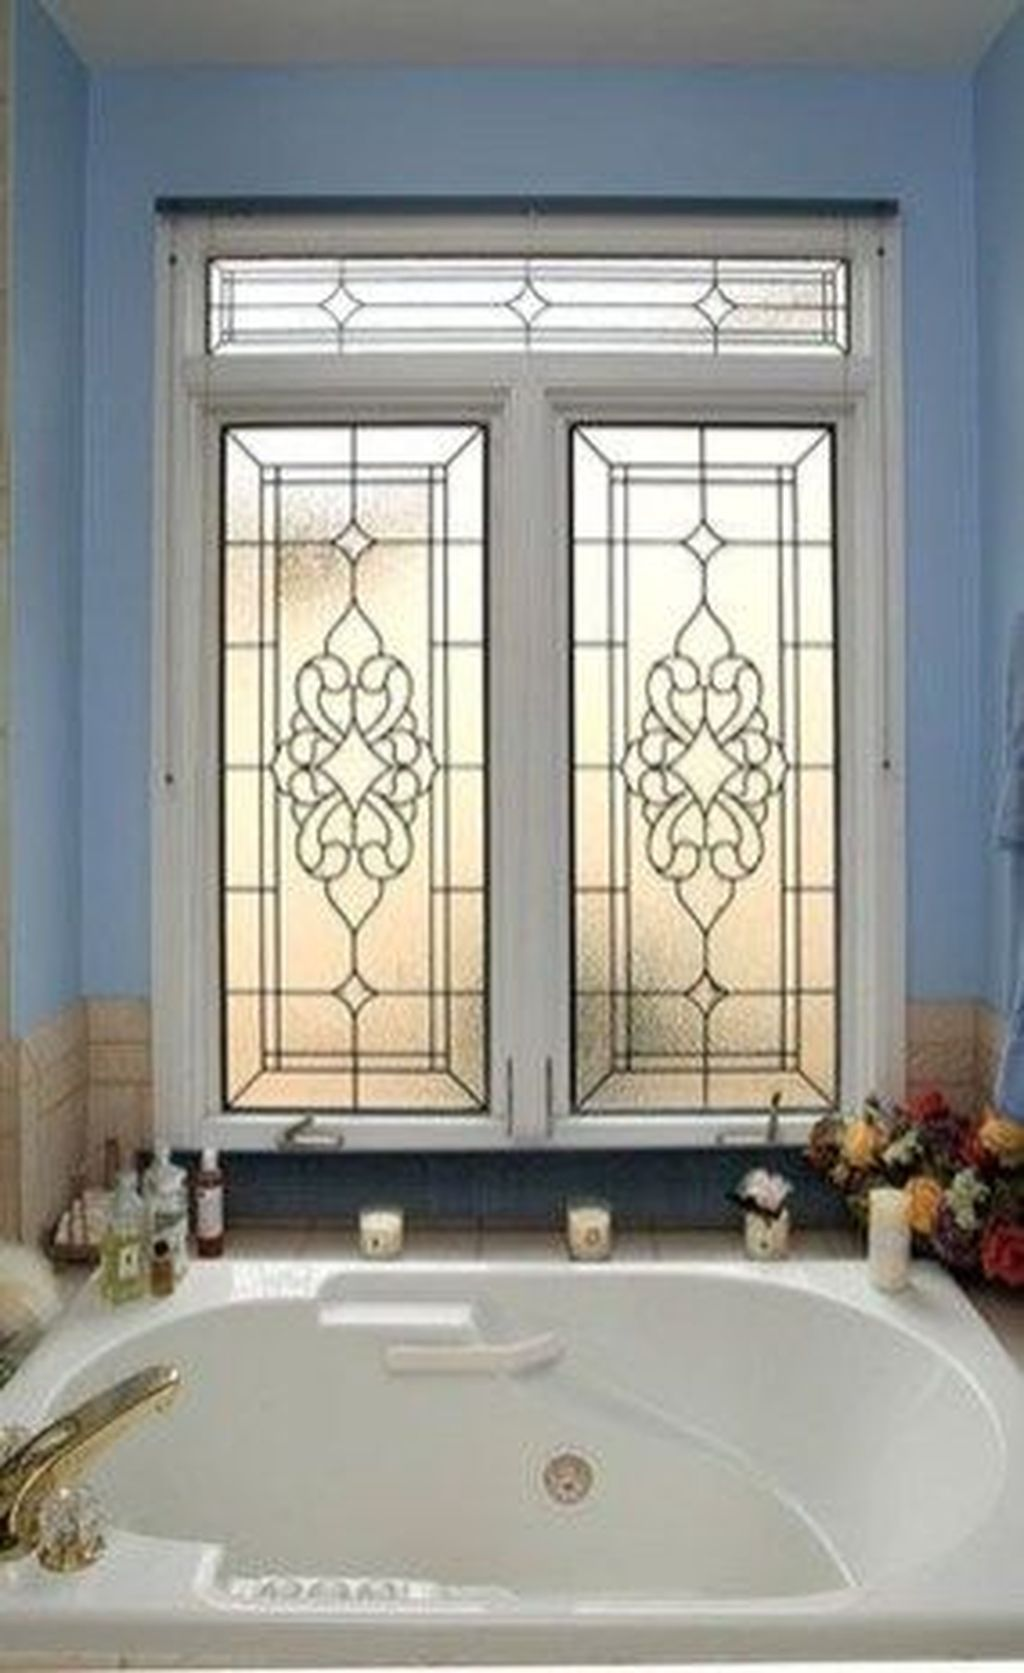 Stunning Leaded Glass Windows Design Ideas 01